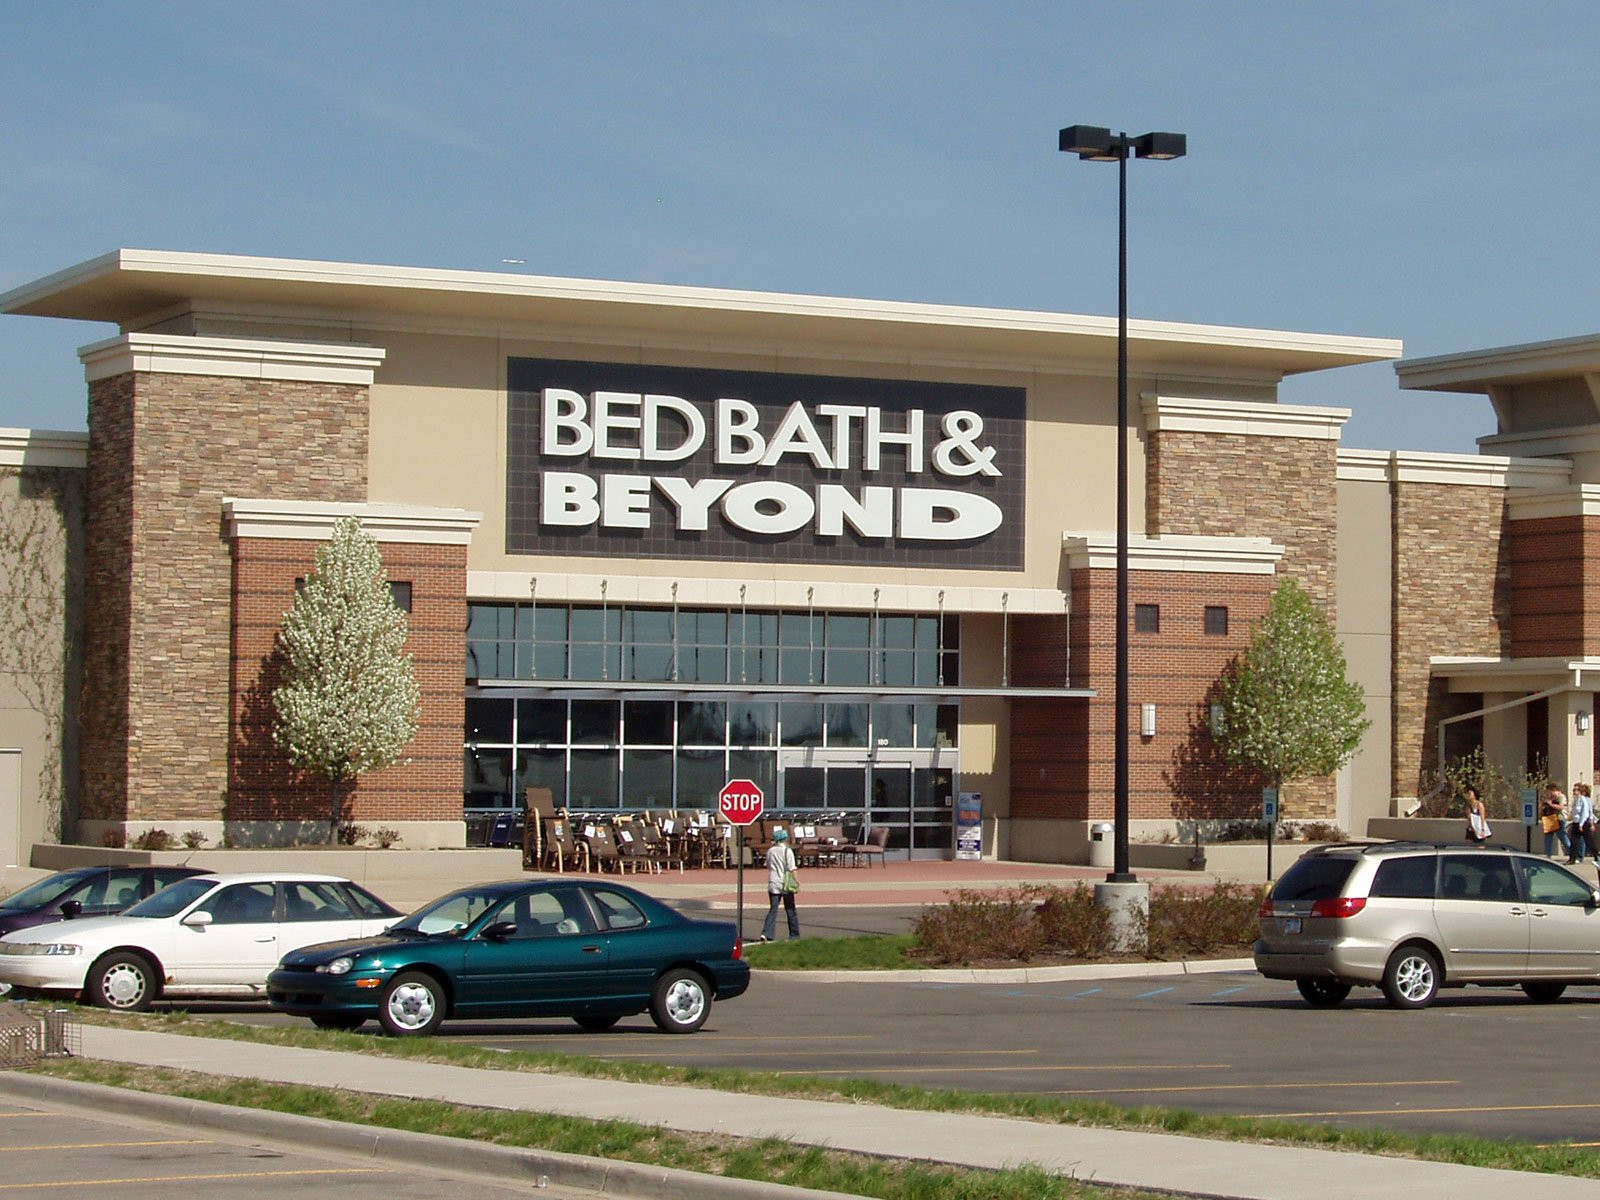 Bed Bath & Beyond Inc. is an American chain of domestic merchandise retail stores in the United States, Puerto Rico, Canada and Mexico. Founded in , the stores sell home goods primarily for the bedroom and bathroom, as well as kitchen and dining room.